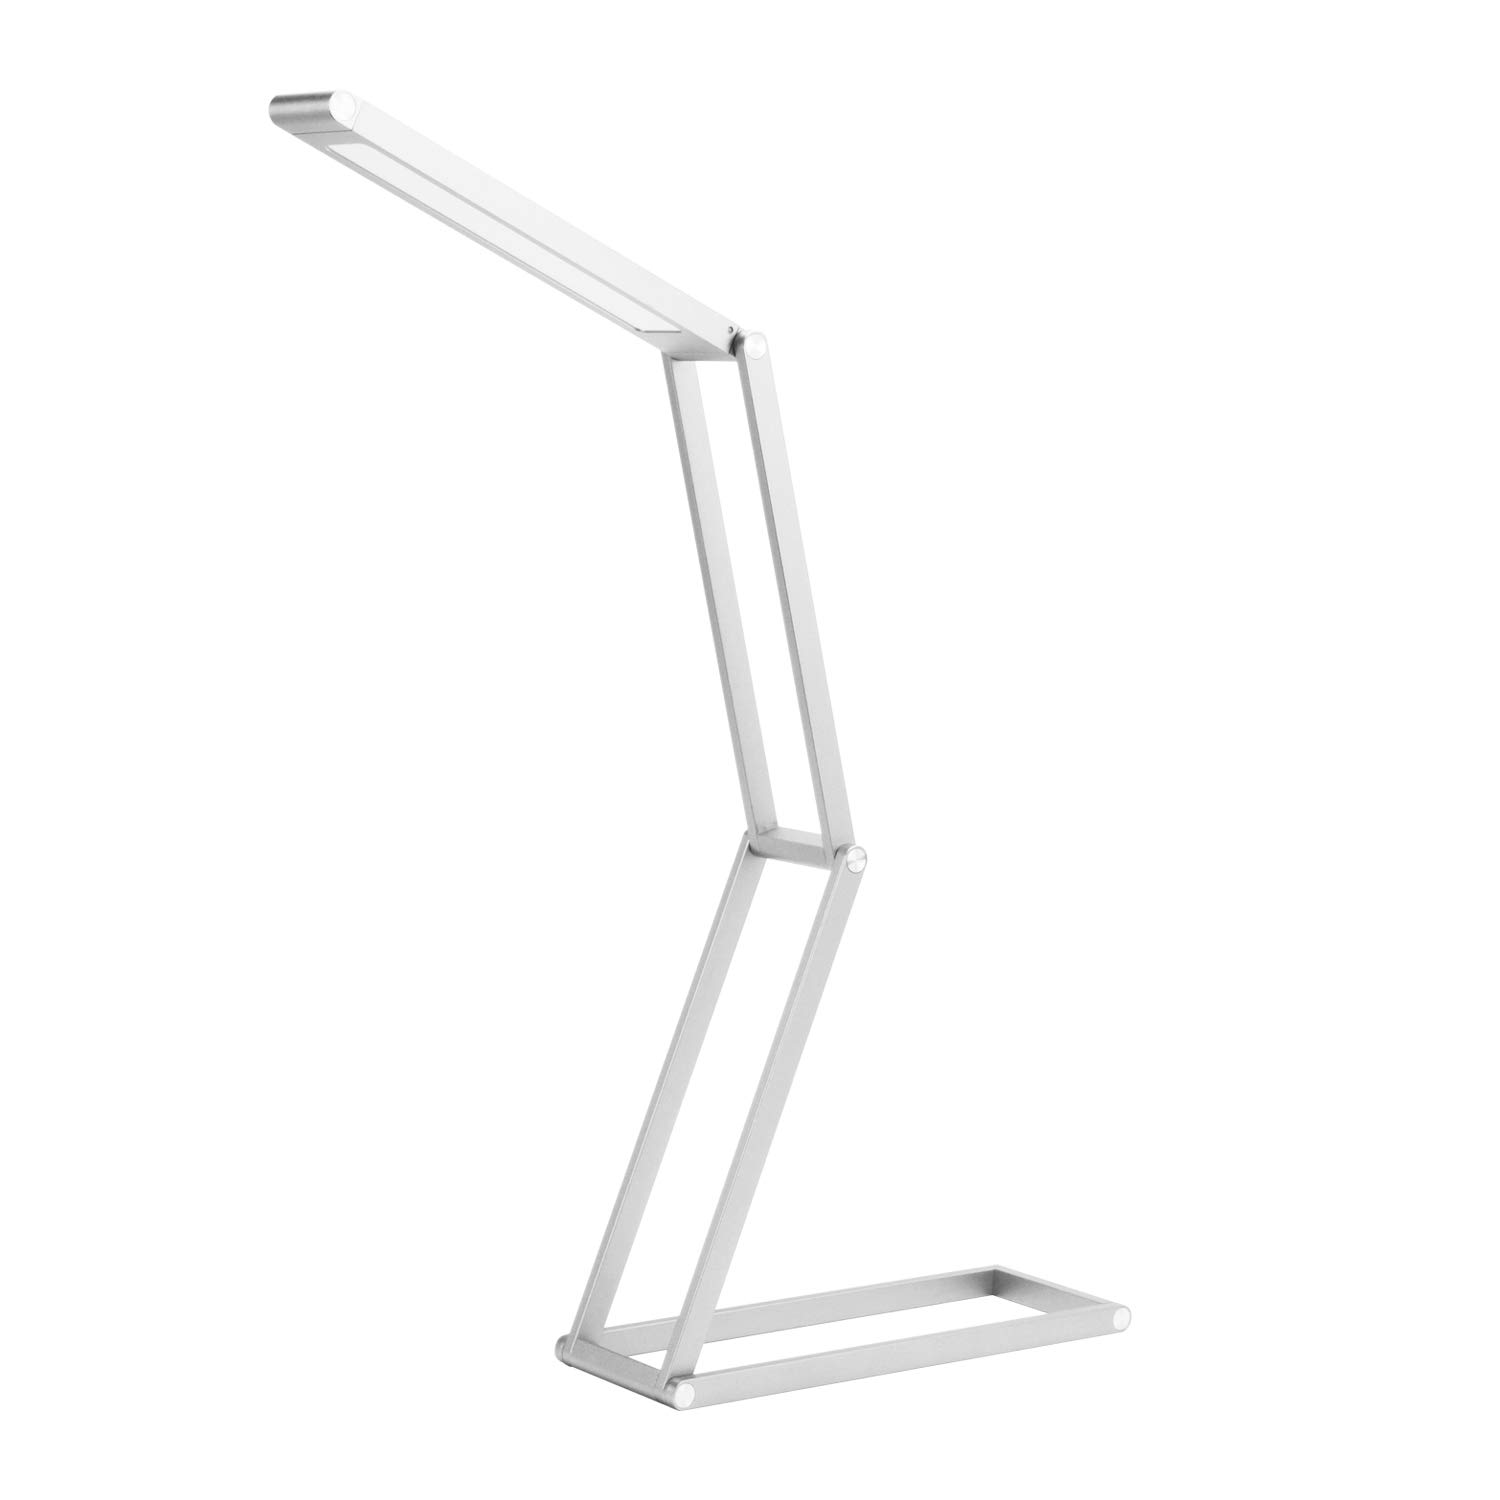 Foldable LED Desk Lamp, USB Rechargeable Selfie Light, Portable Table lamp, Light Hangers, Portable and Multi-Functional for Reading, Studying, Camping, Home,Bedroom and Office - ANTIEE (Silver) by ANTIEE